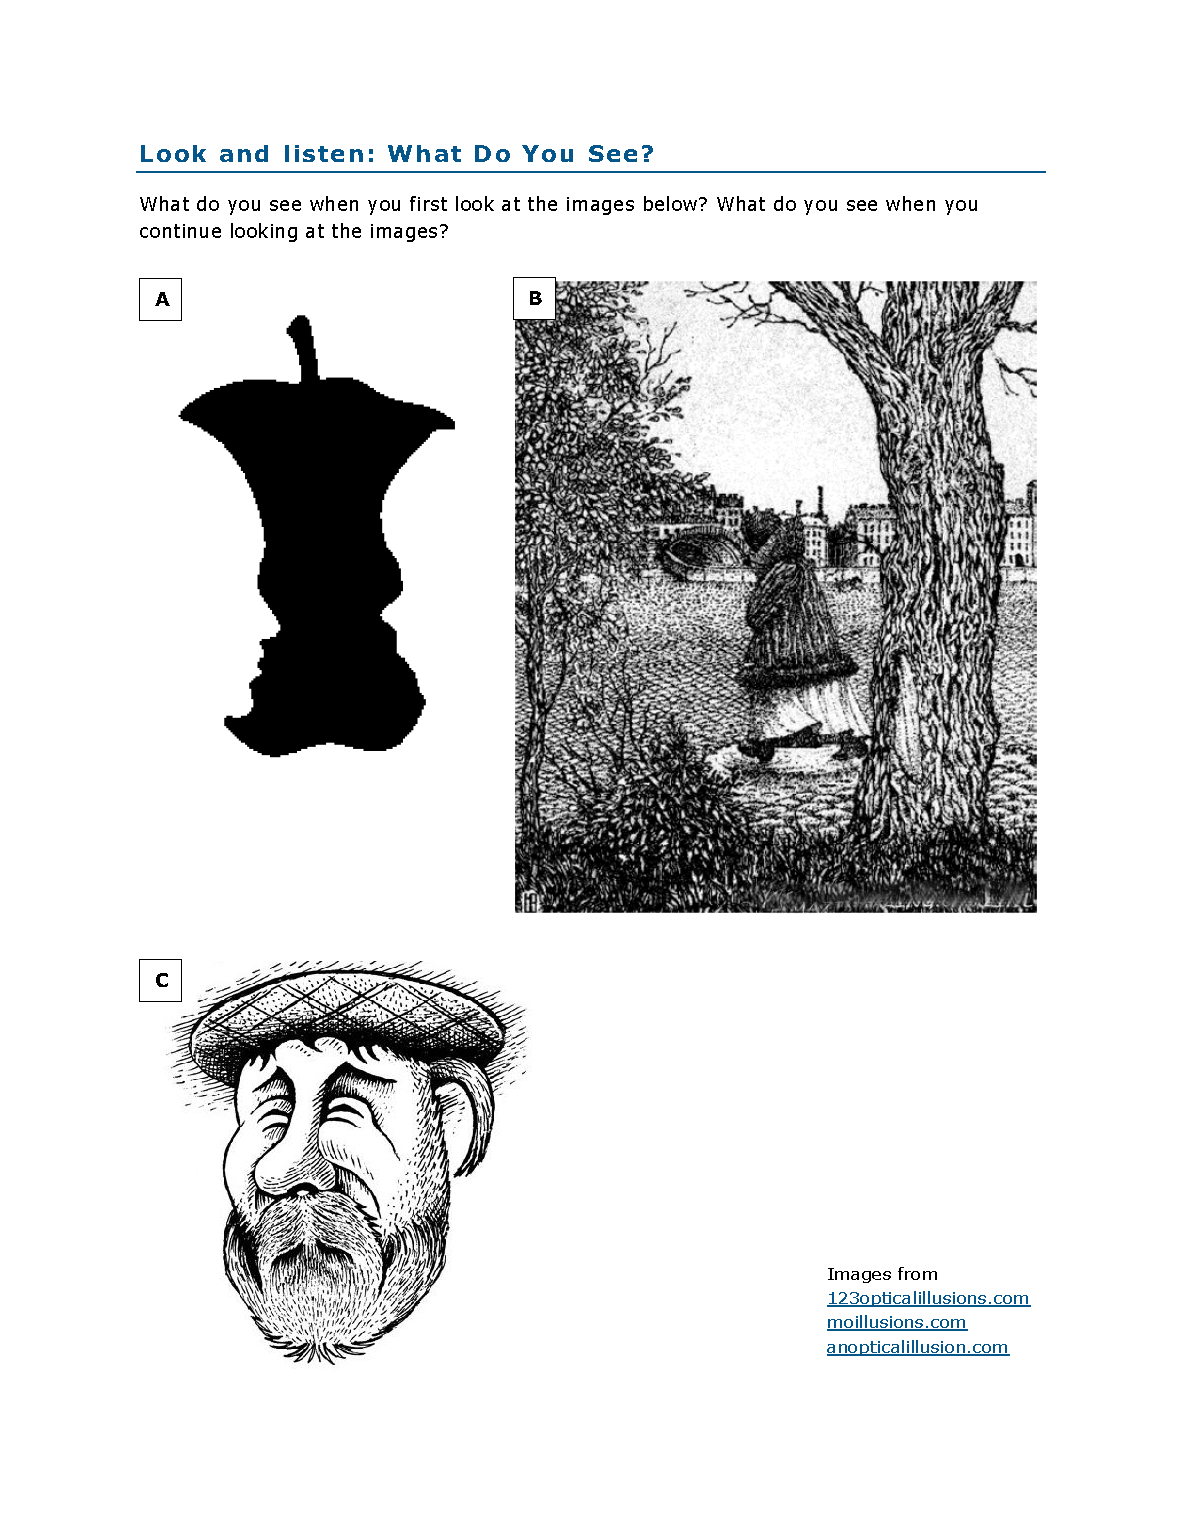 Distribute or project the What Do You See? handout to